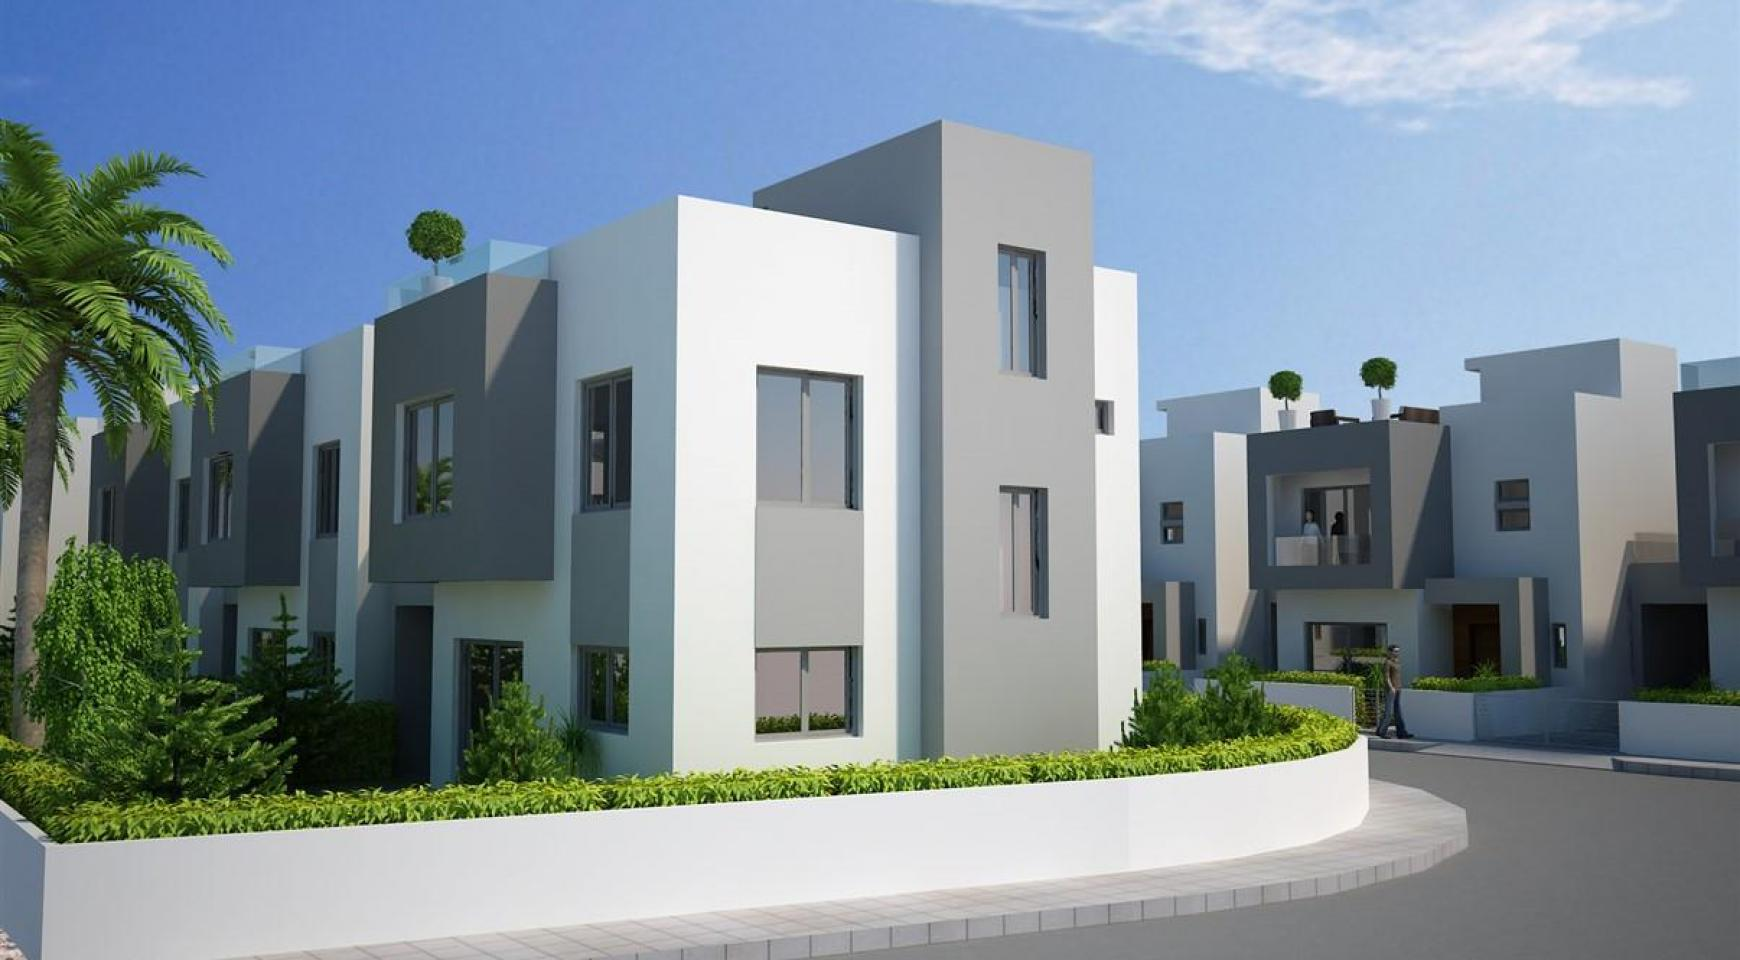 3 Bedroom Villa in New Project in Paphos - 31